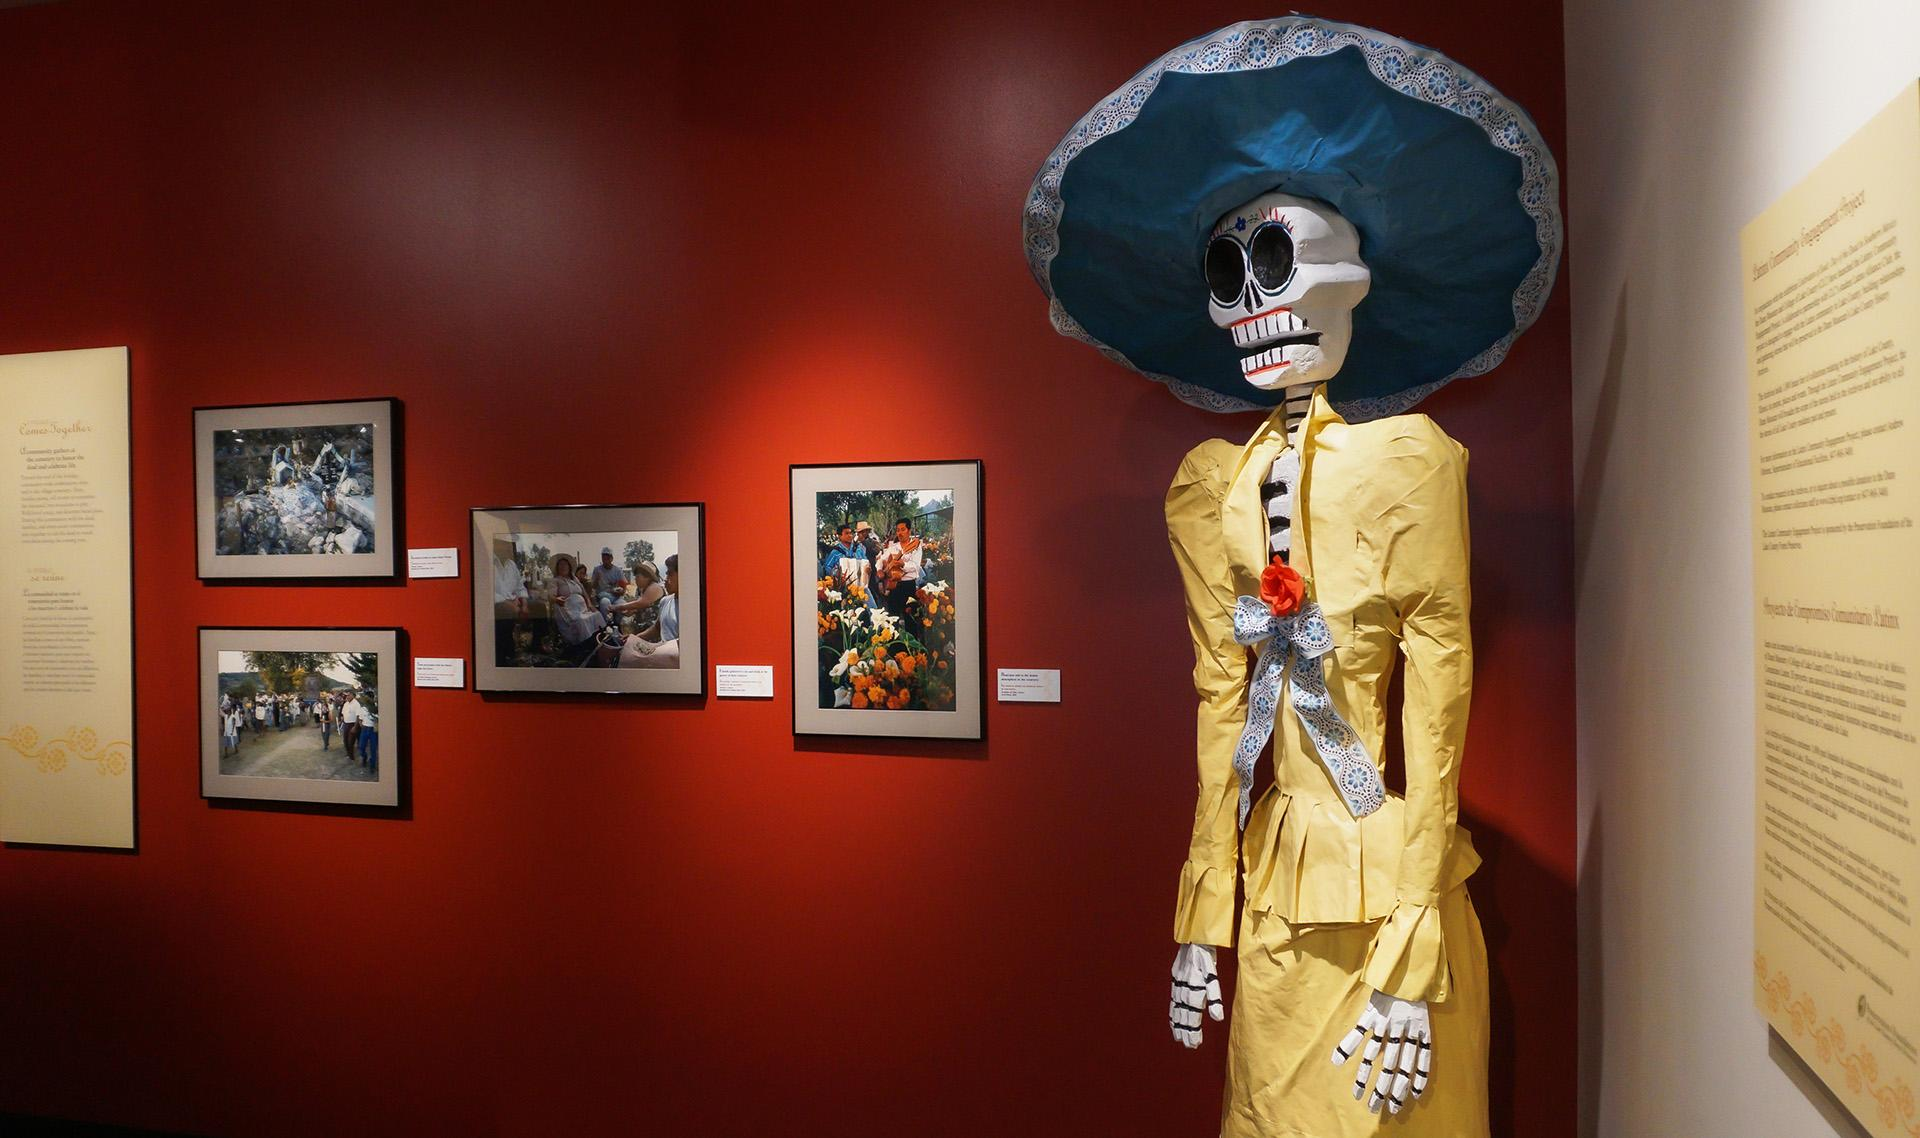 A strong and recognizable symbol of the Day of the Dead celebration is La Catrina, a tall female skeleton wearing bright clothing. Life-size catrinas are included in the exhibit.  (Courtesy of Lake County Forest Preserves)